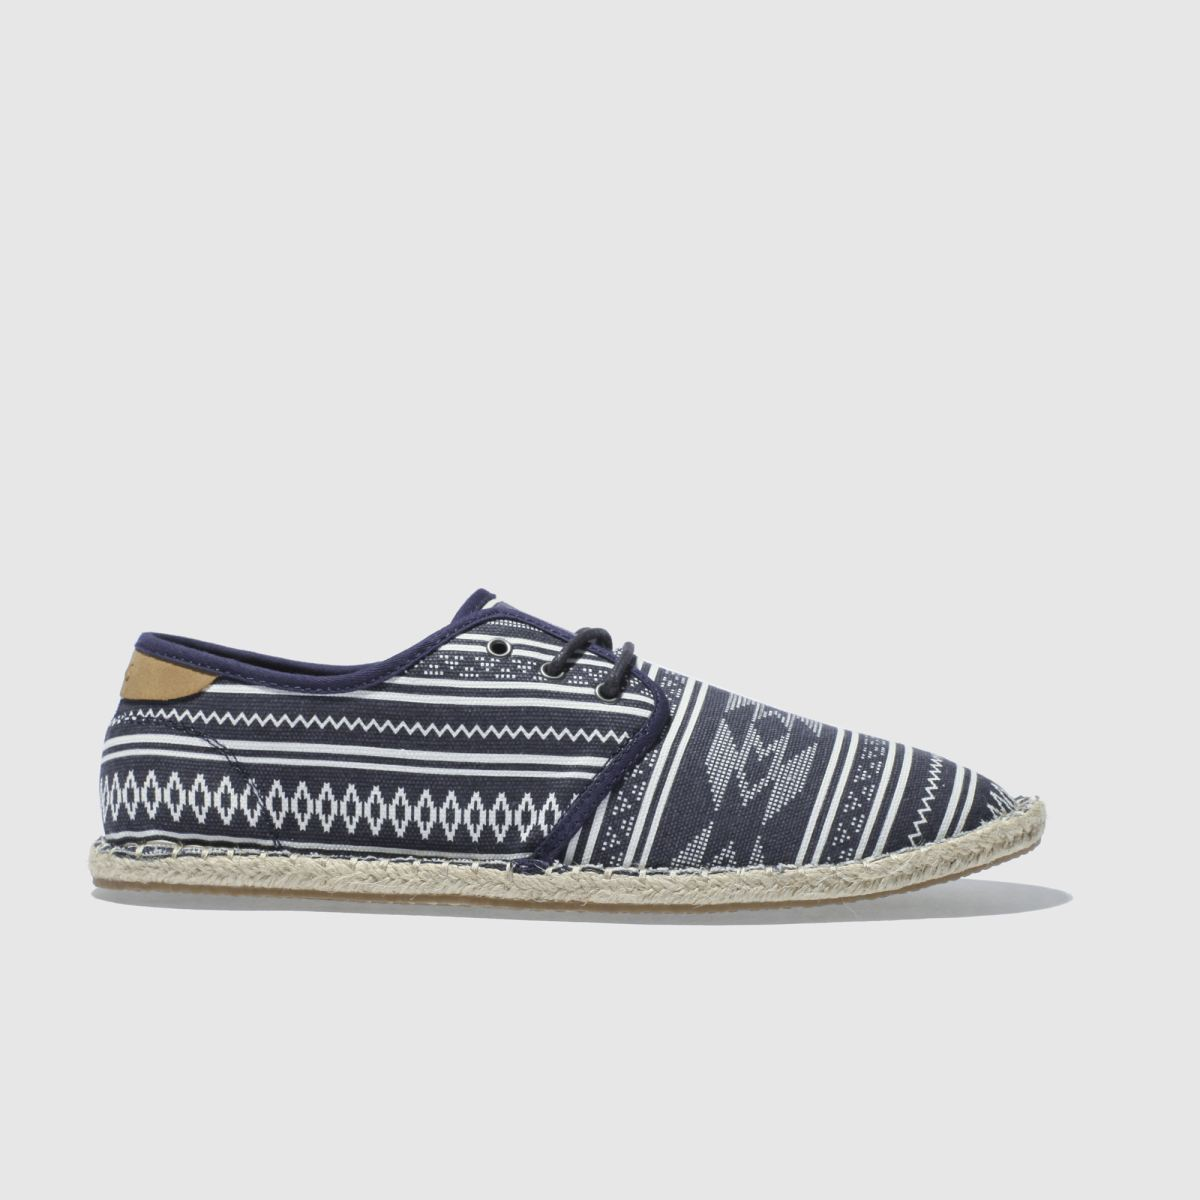 Toms Navy & White Diego Shoes